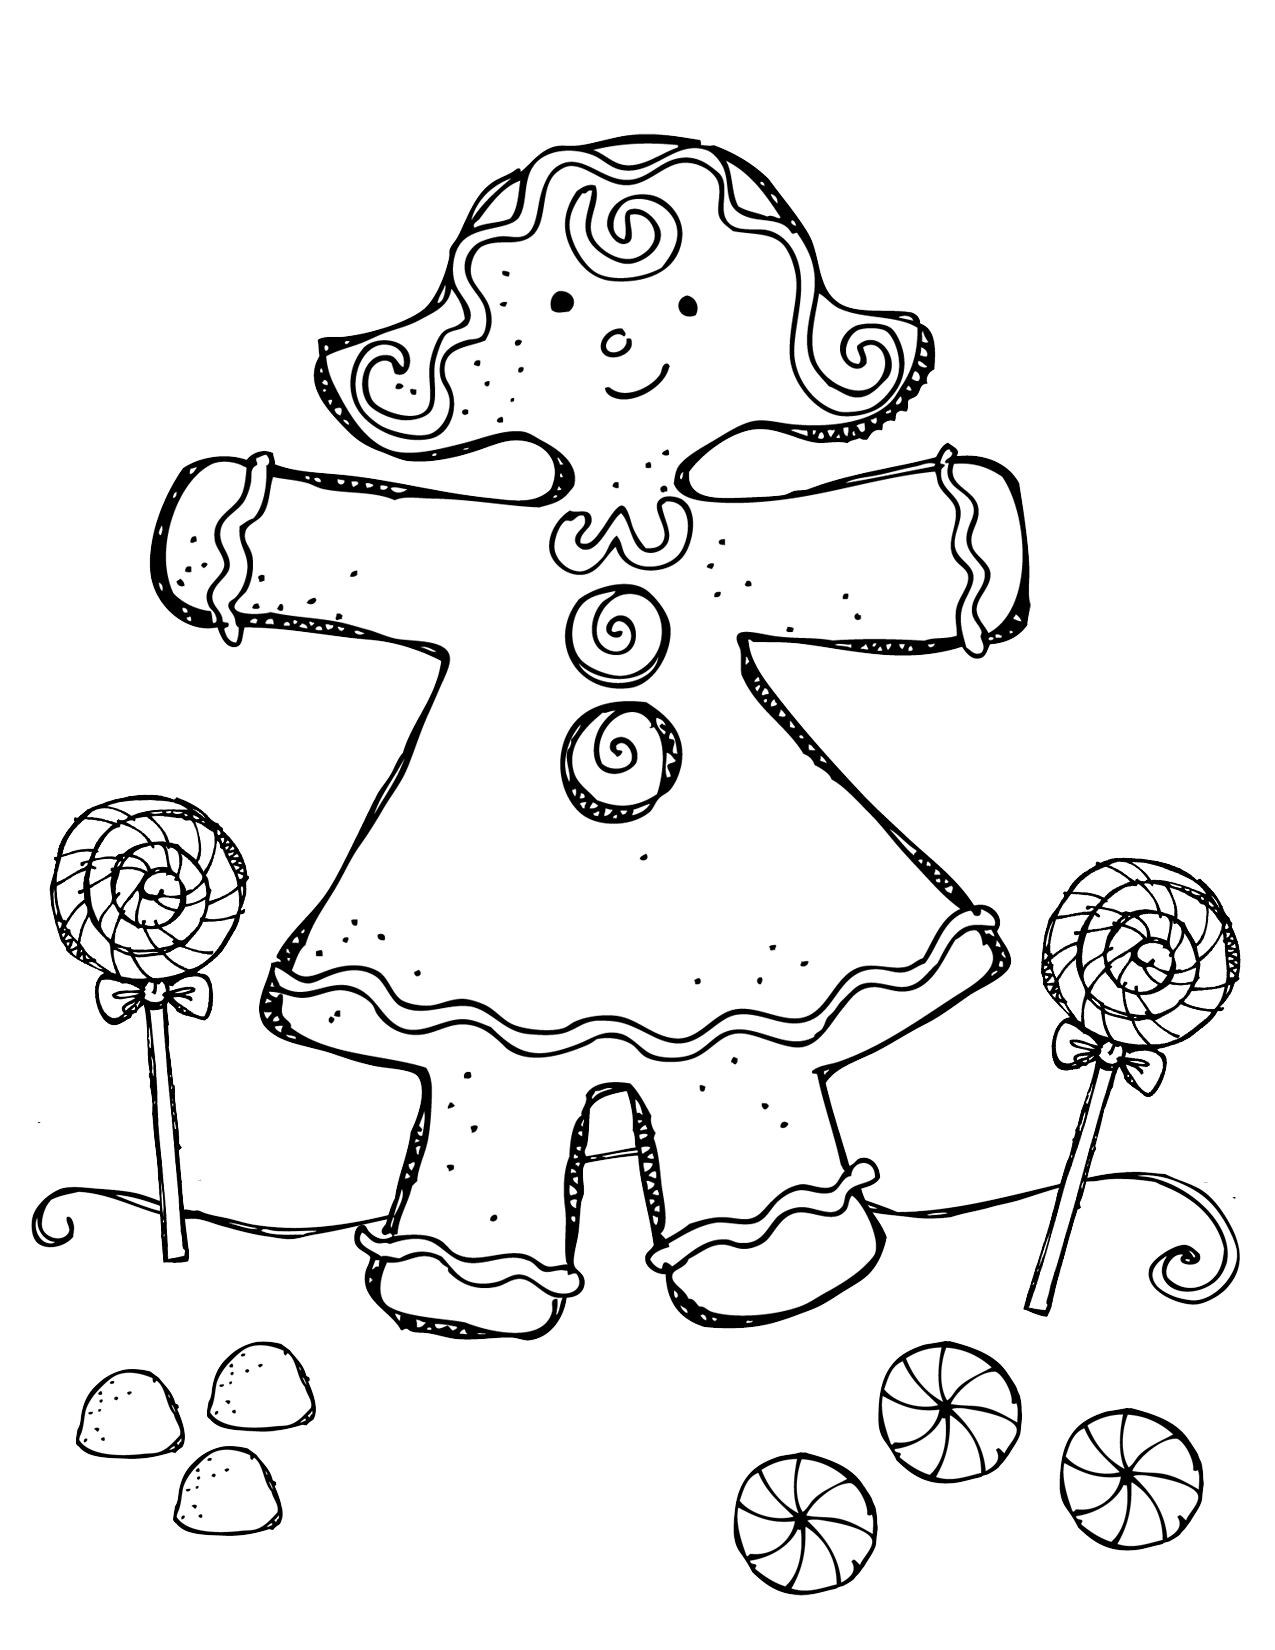 Gingerbread boy and girl coloring pages az coloring pages for Gingerbread man coloring pages free